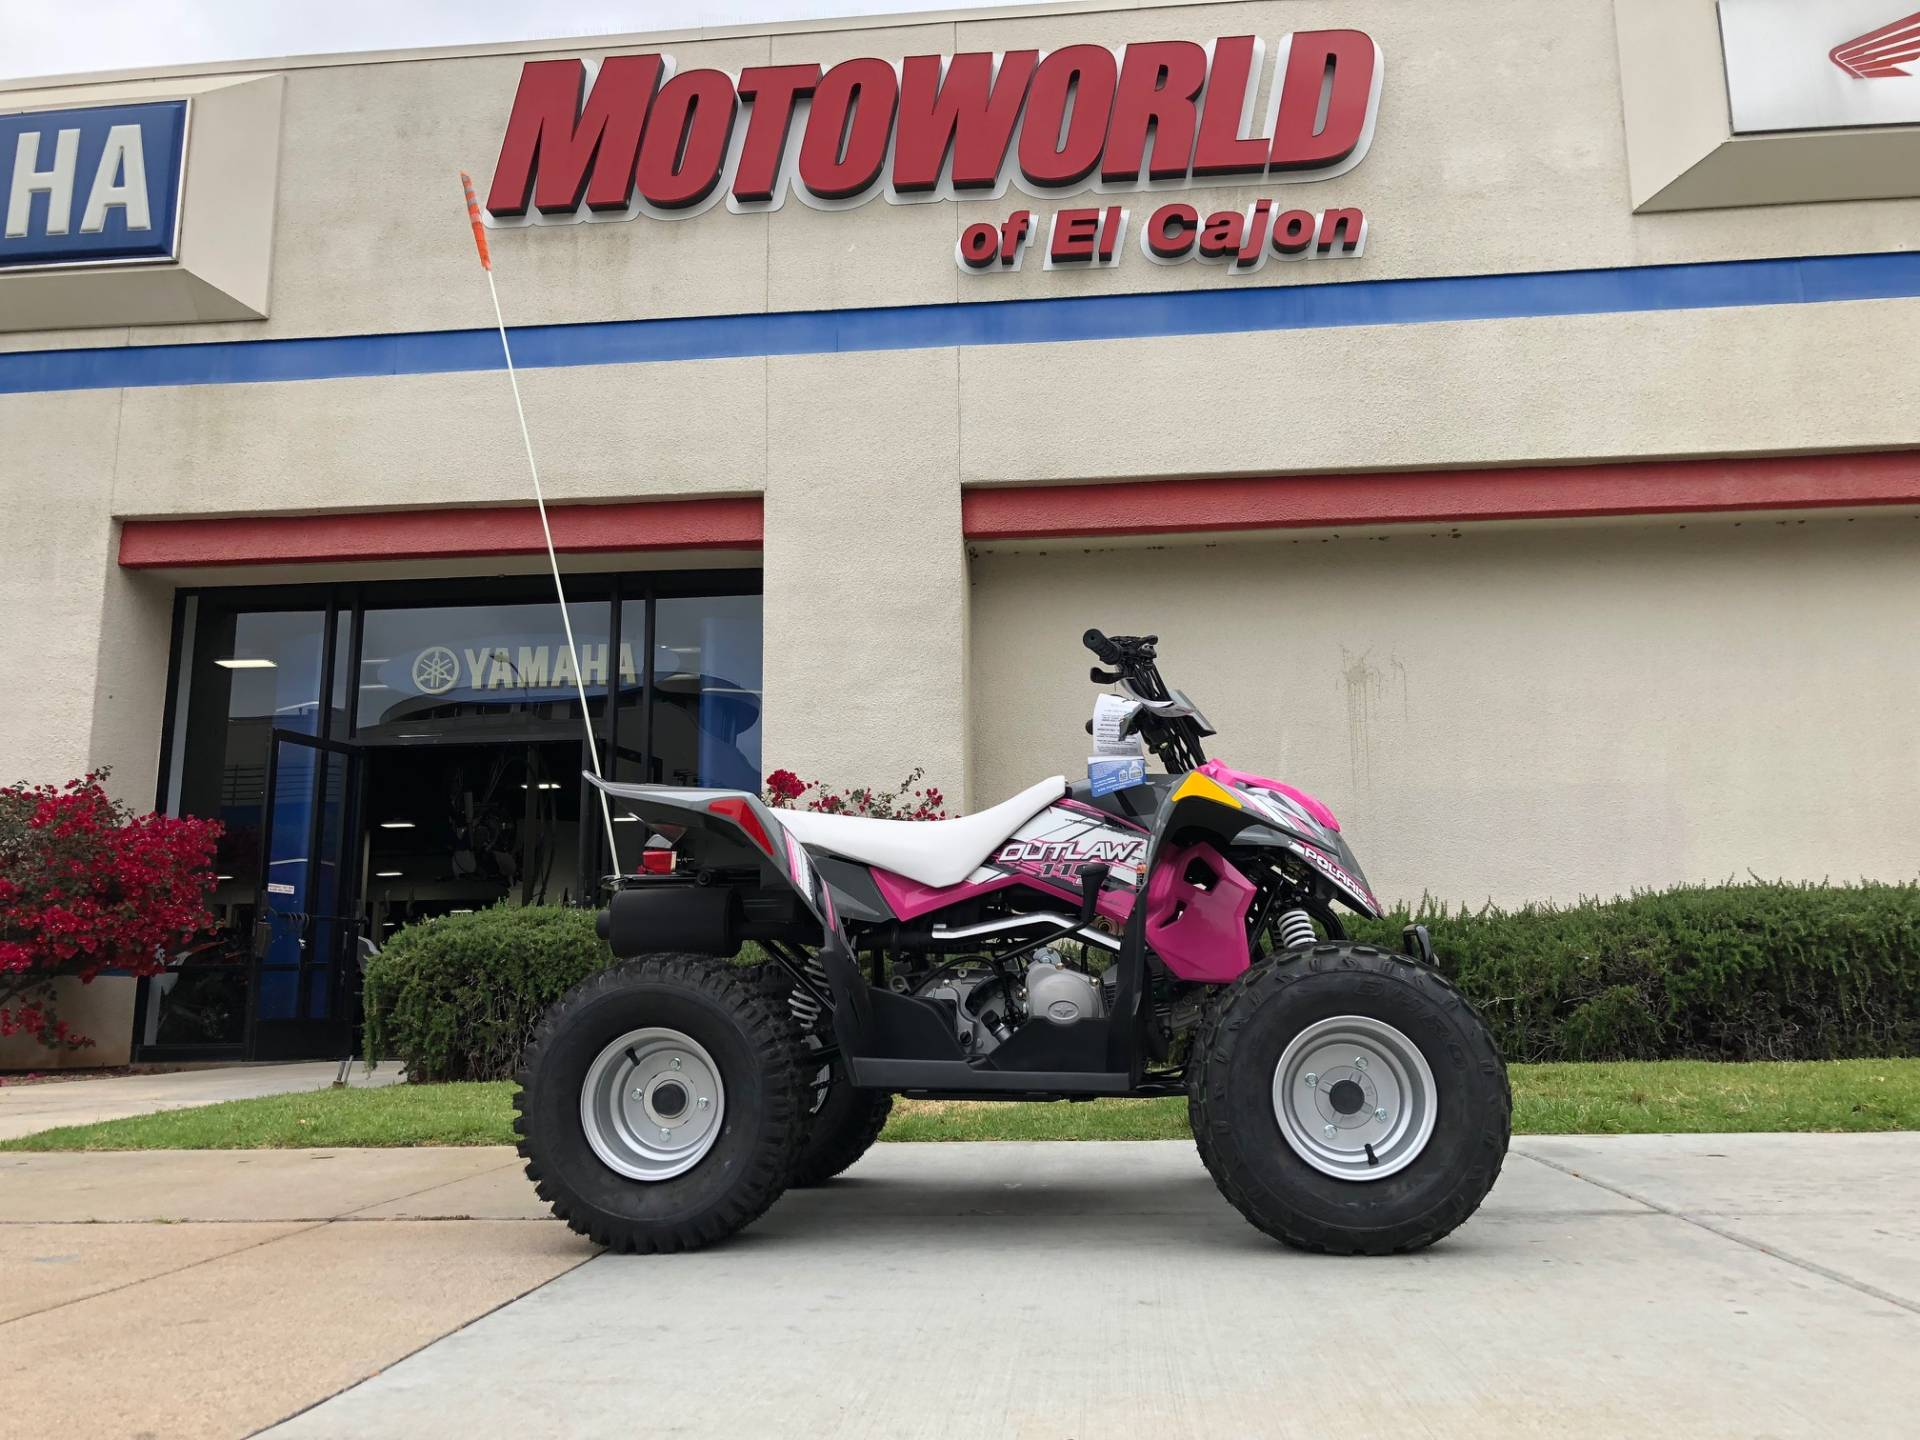 2018 Polaris Outlaw 110 for sale 157630